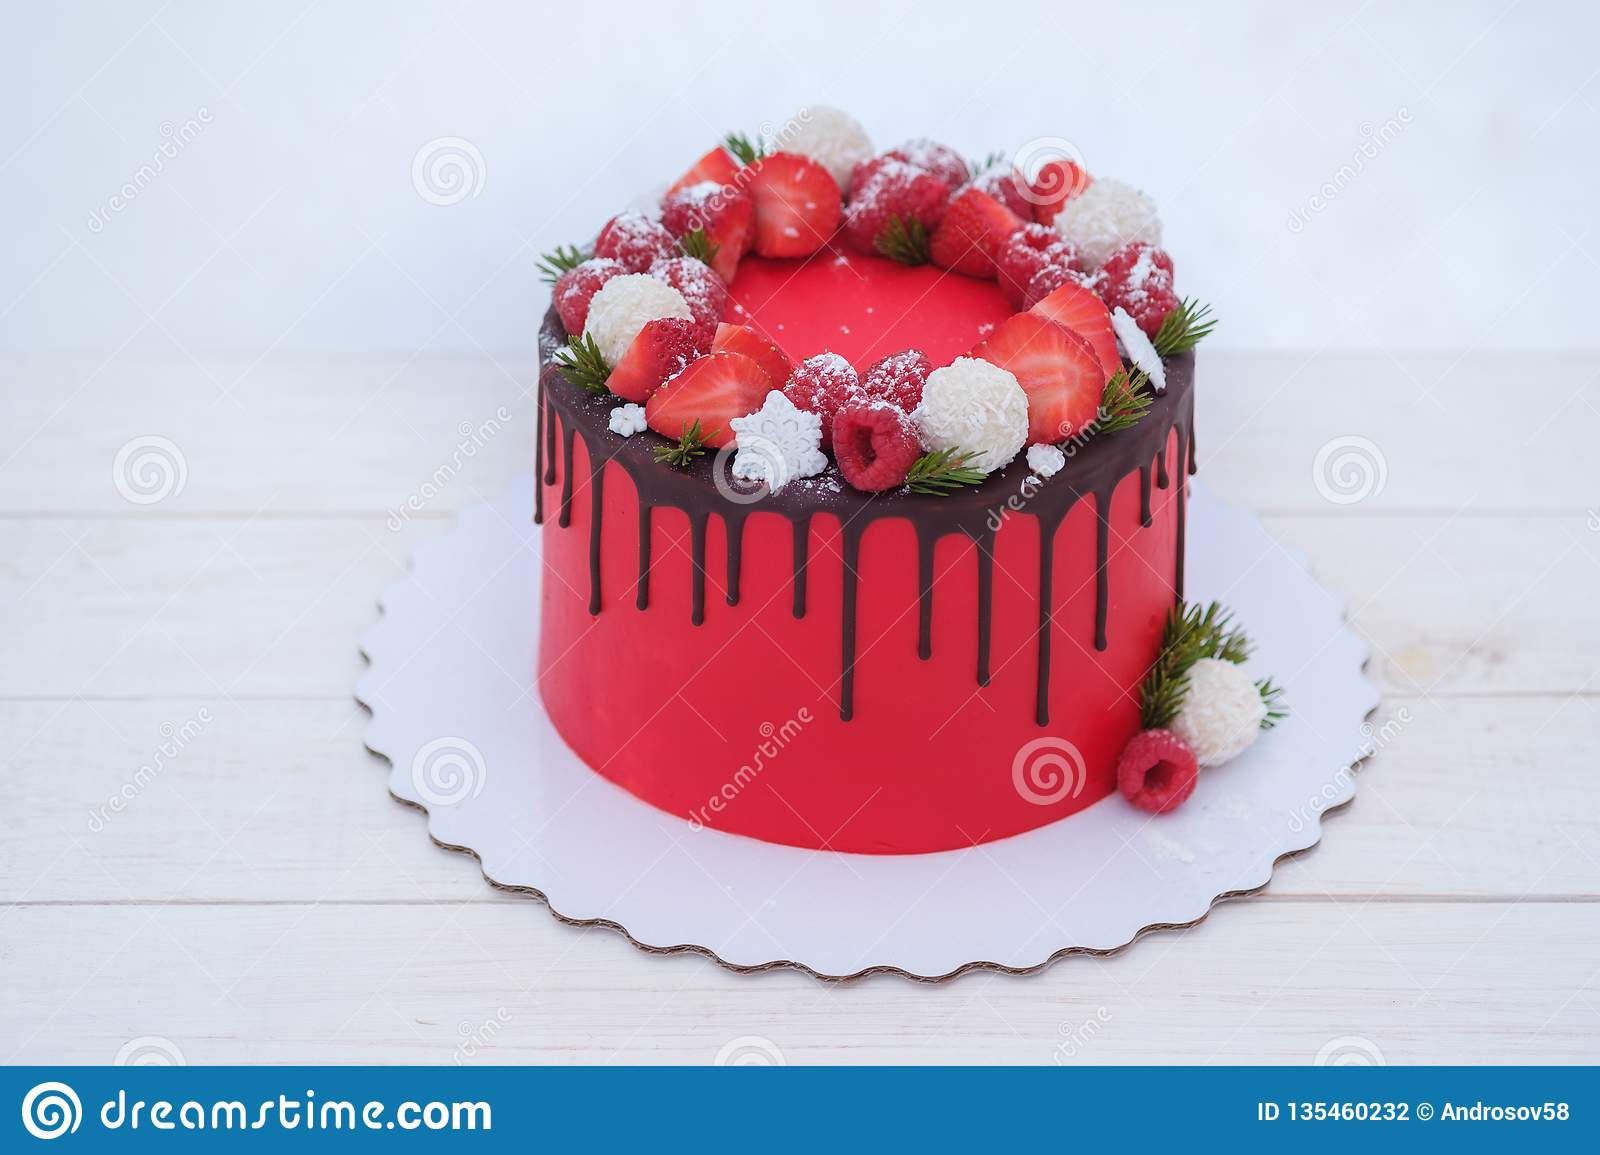 Awe Inspiring Beautiful Birthday Cake In Winter Style With Fir Branches And Funny Birthday Cards Online Eattedamsfinfo